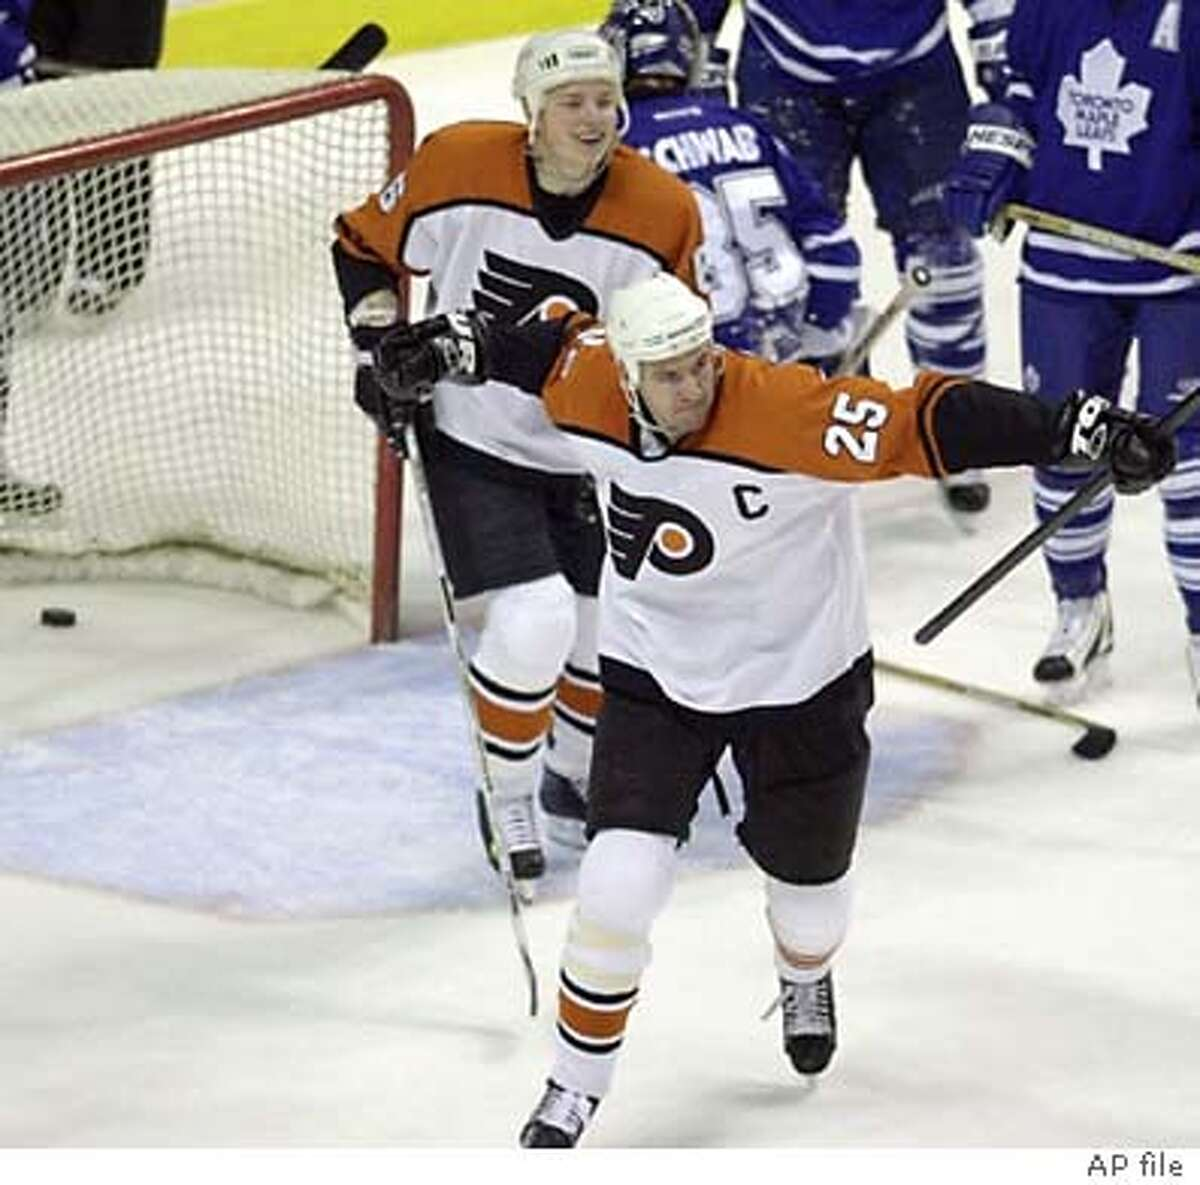 Philadelphia Flyers' Keith Primeau, right, reacts with teammate Ruslan Fedotenko, left, of Ukraine, after Primeau scored his second goal of the night against the Toronto Maple Leafs in the second period Monday, March 25, 2002, in Philadlephia. (AP Photo/Chris Gardner)